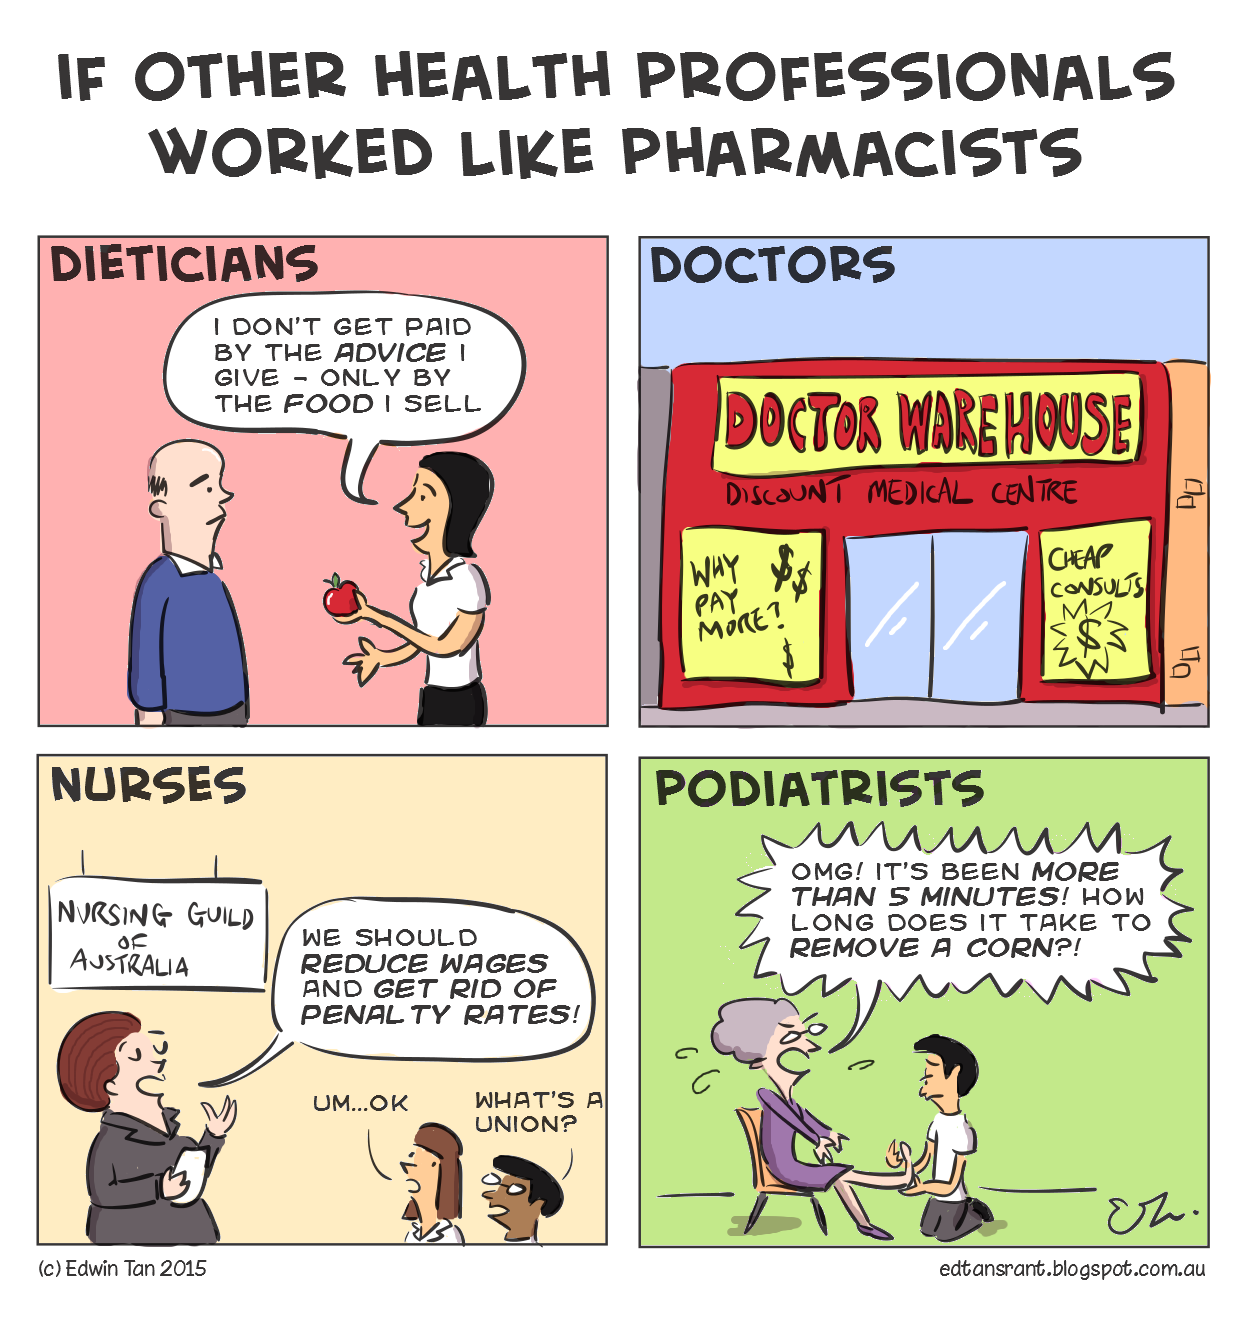 an analysis of the pharmacist profession Analysis has always been a big part of my life because i analyze everything revalidation of a pharmacist's professional qualification is largely informed by ethical considerations - over the last decade, many medical cases.